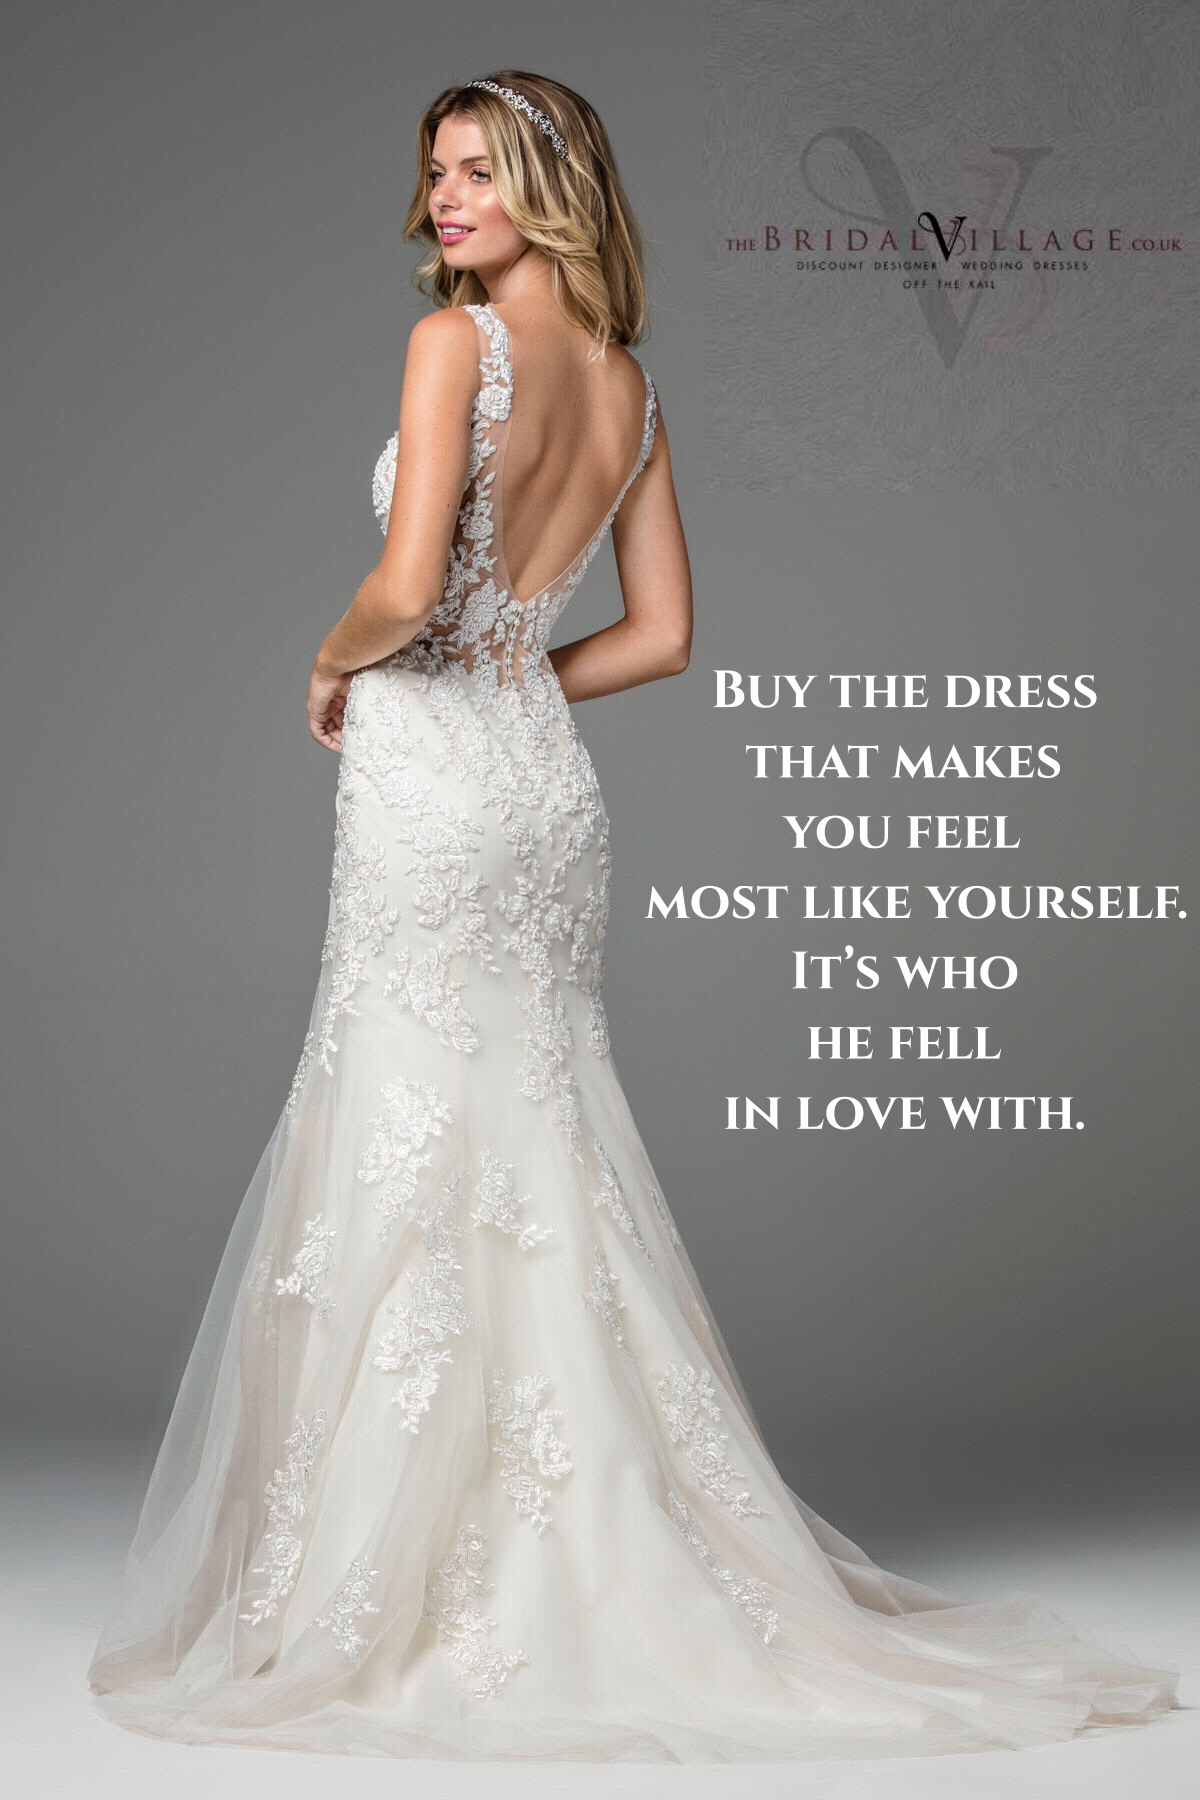 wedding dress online shop uk